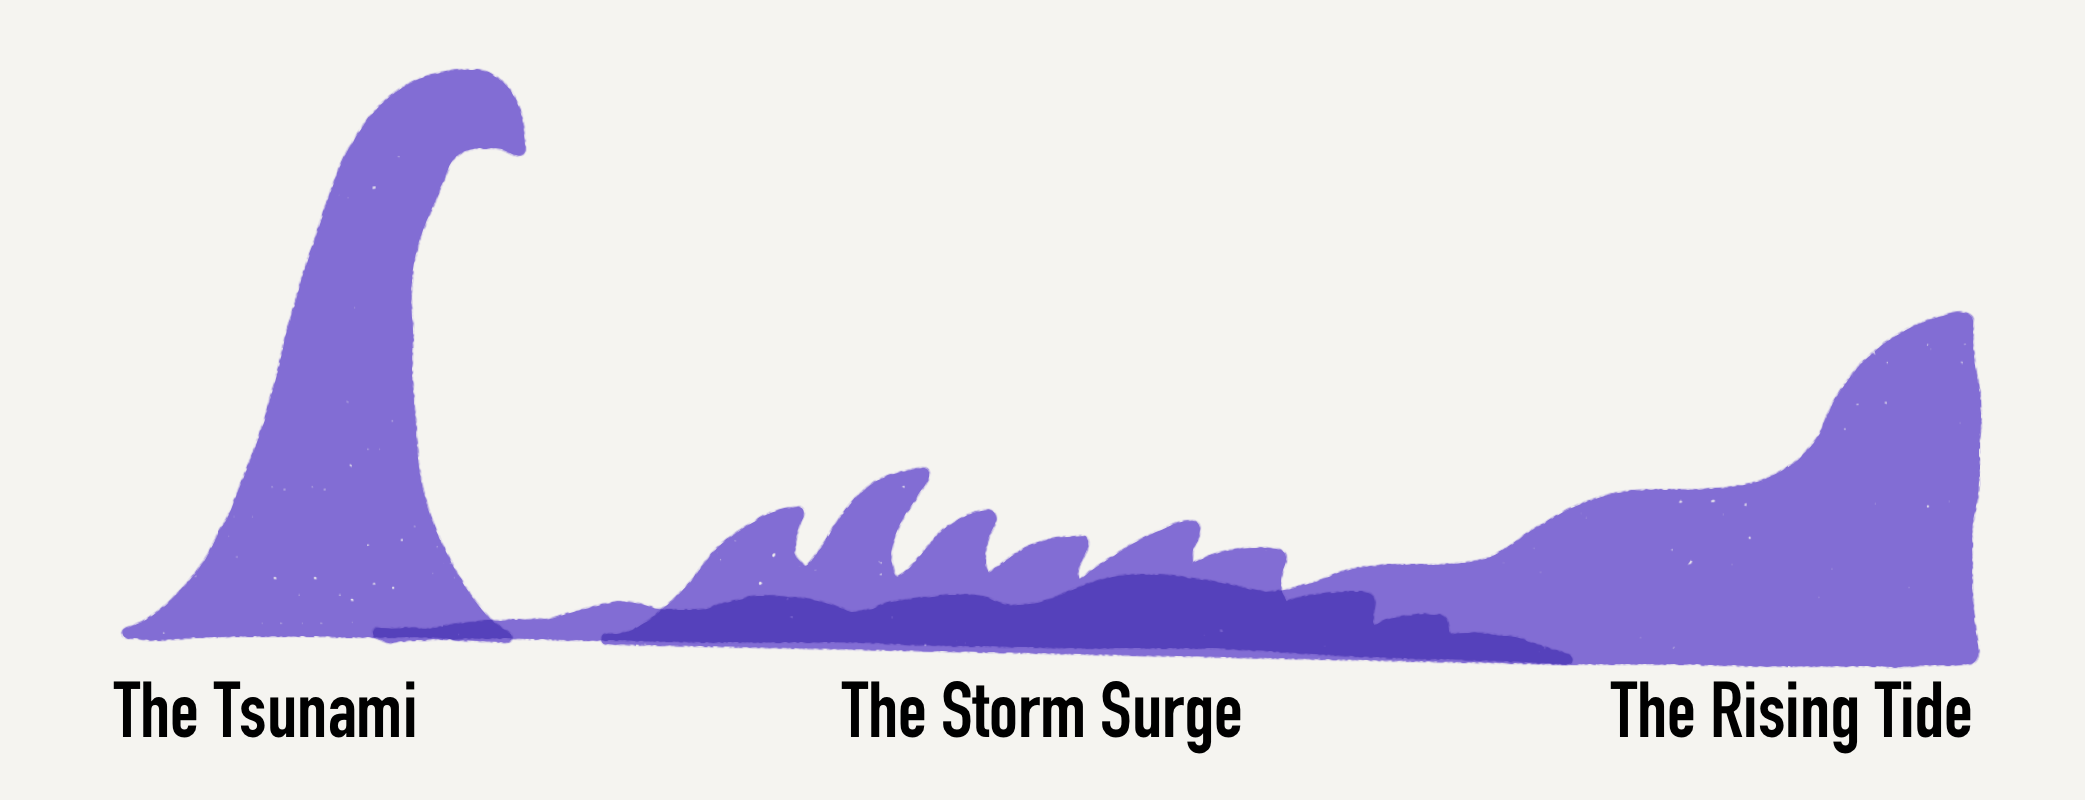 Graphic: Purple Waves showing Tsunami, Storm Surge, Rising Tide